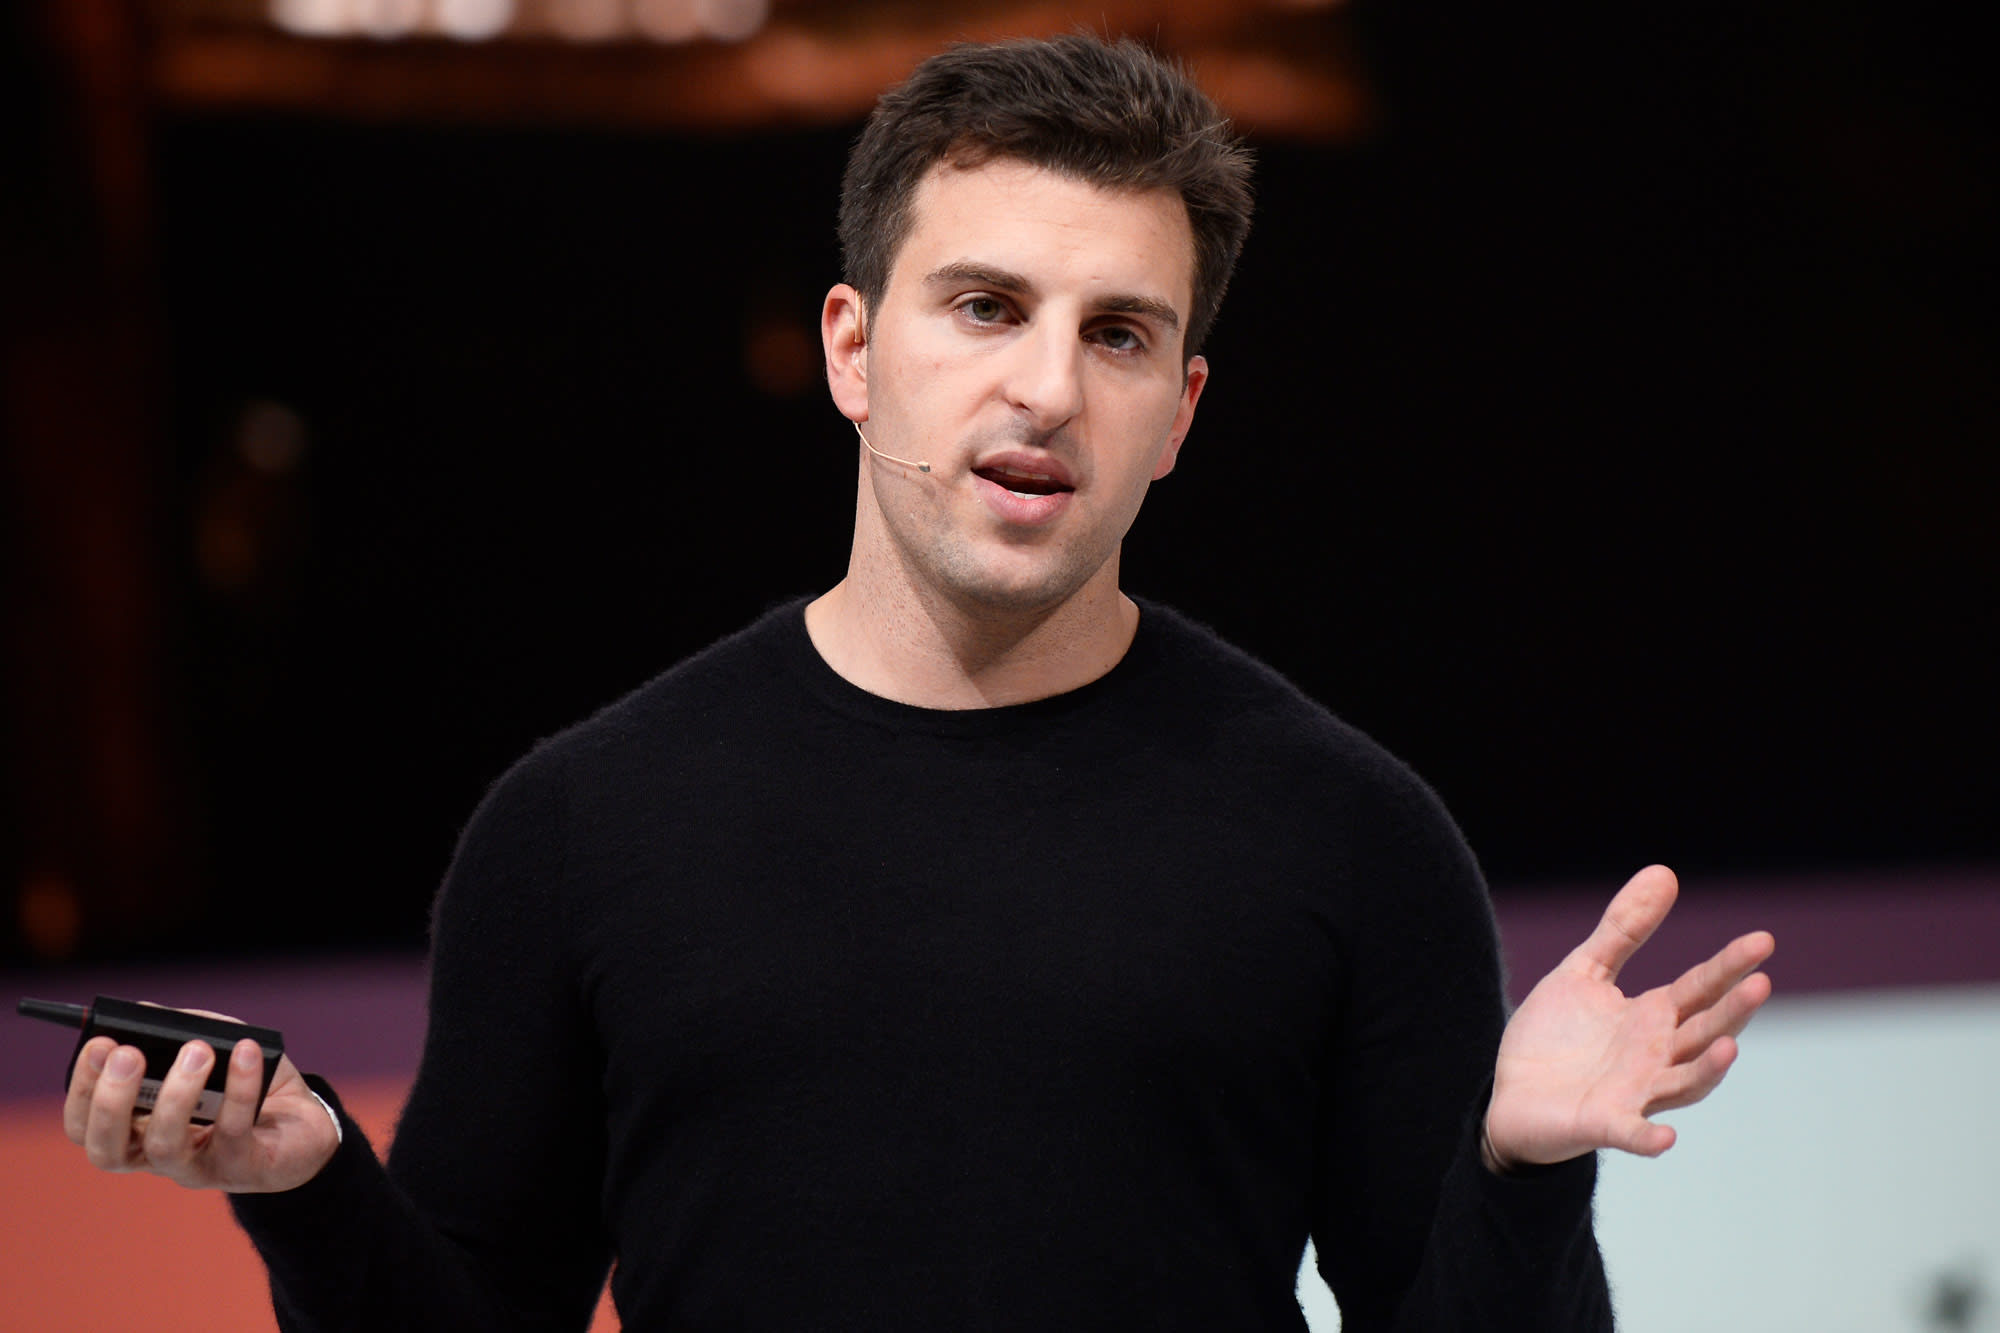 Watch Airbnb co-founder and CEO Brian Chesky speak live